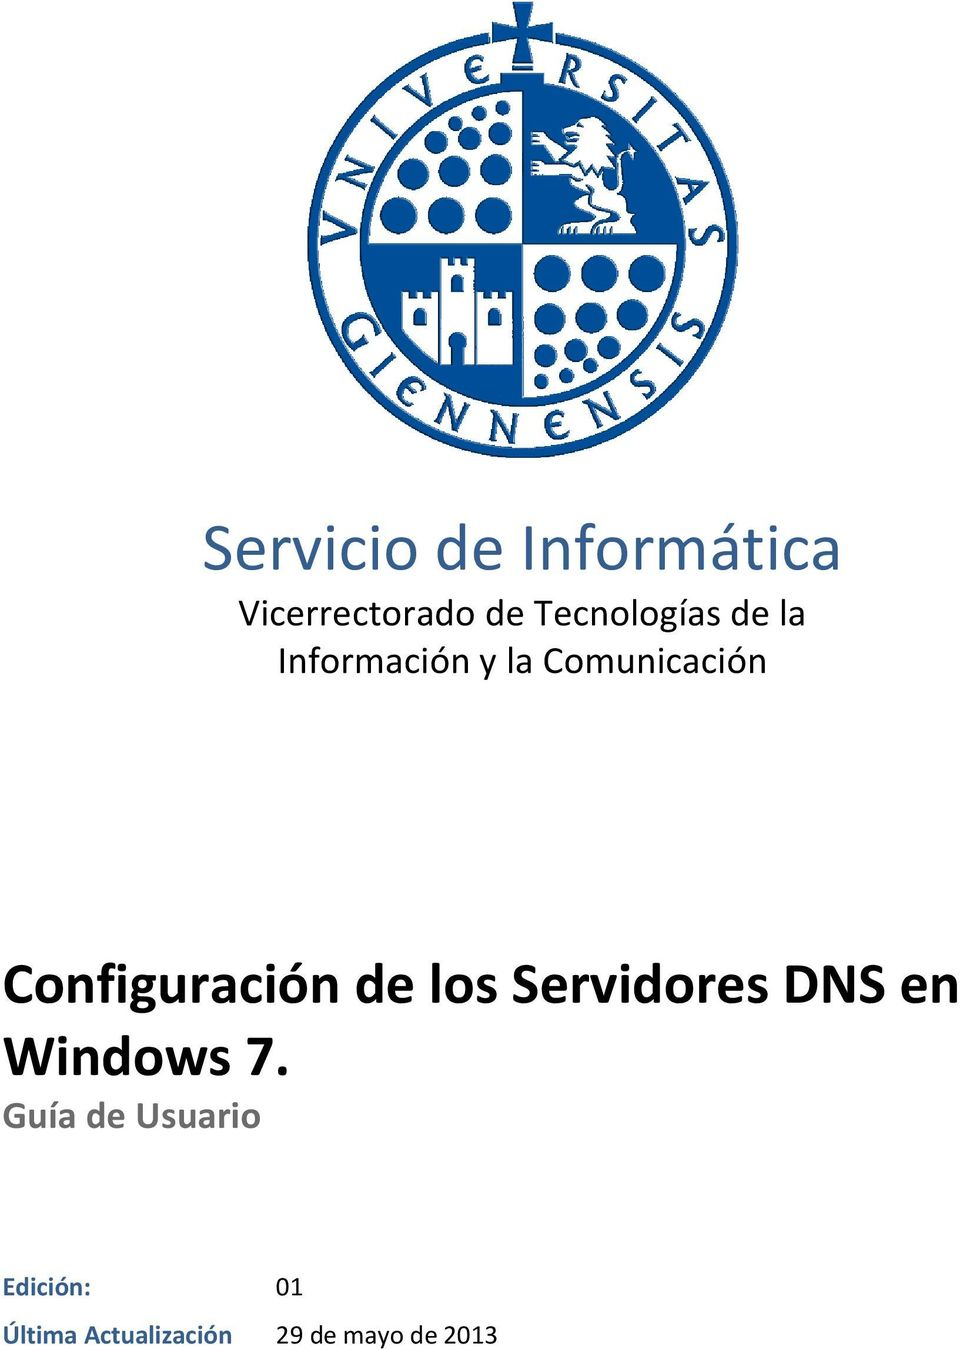 los Servidores DNS en Windows 7.